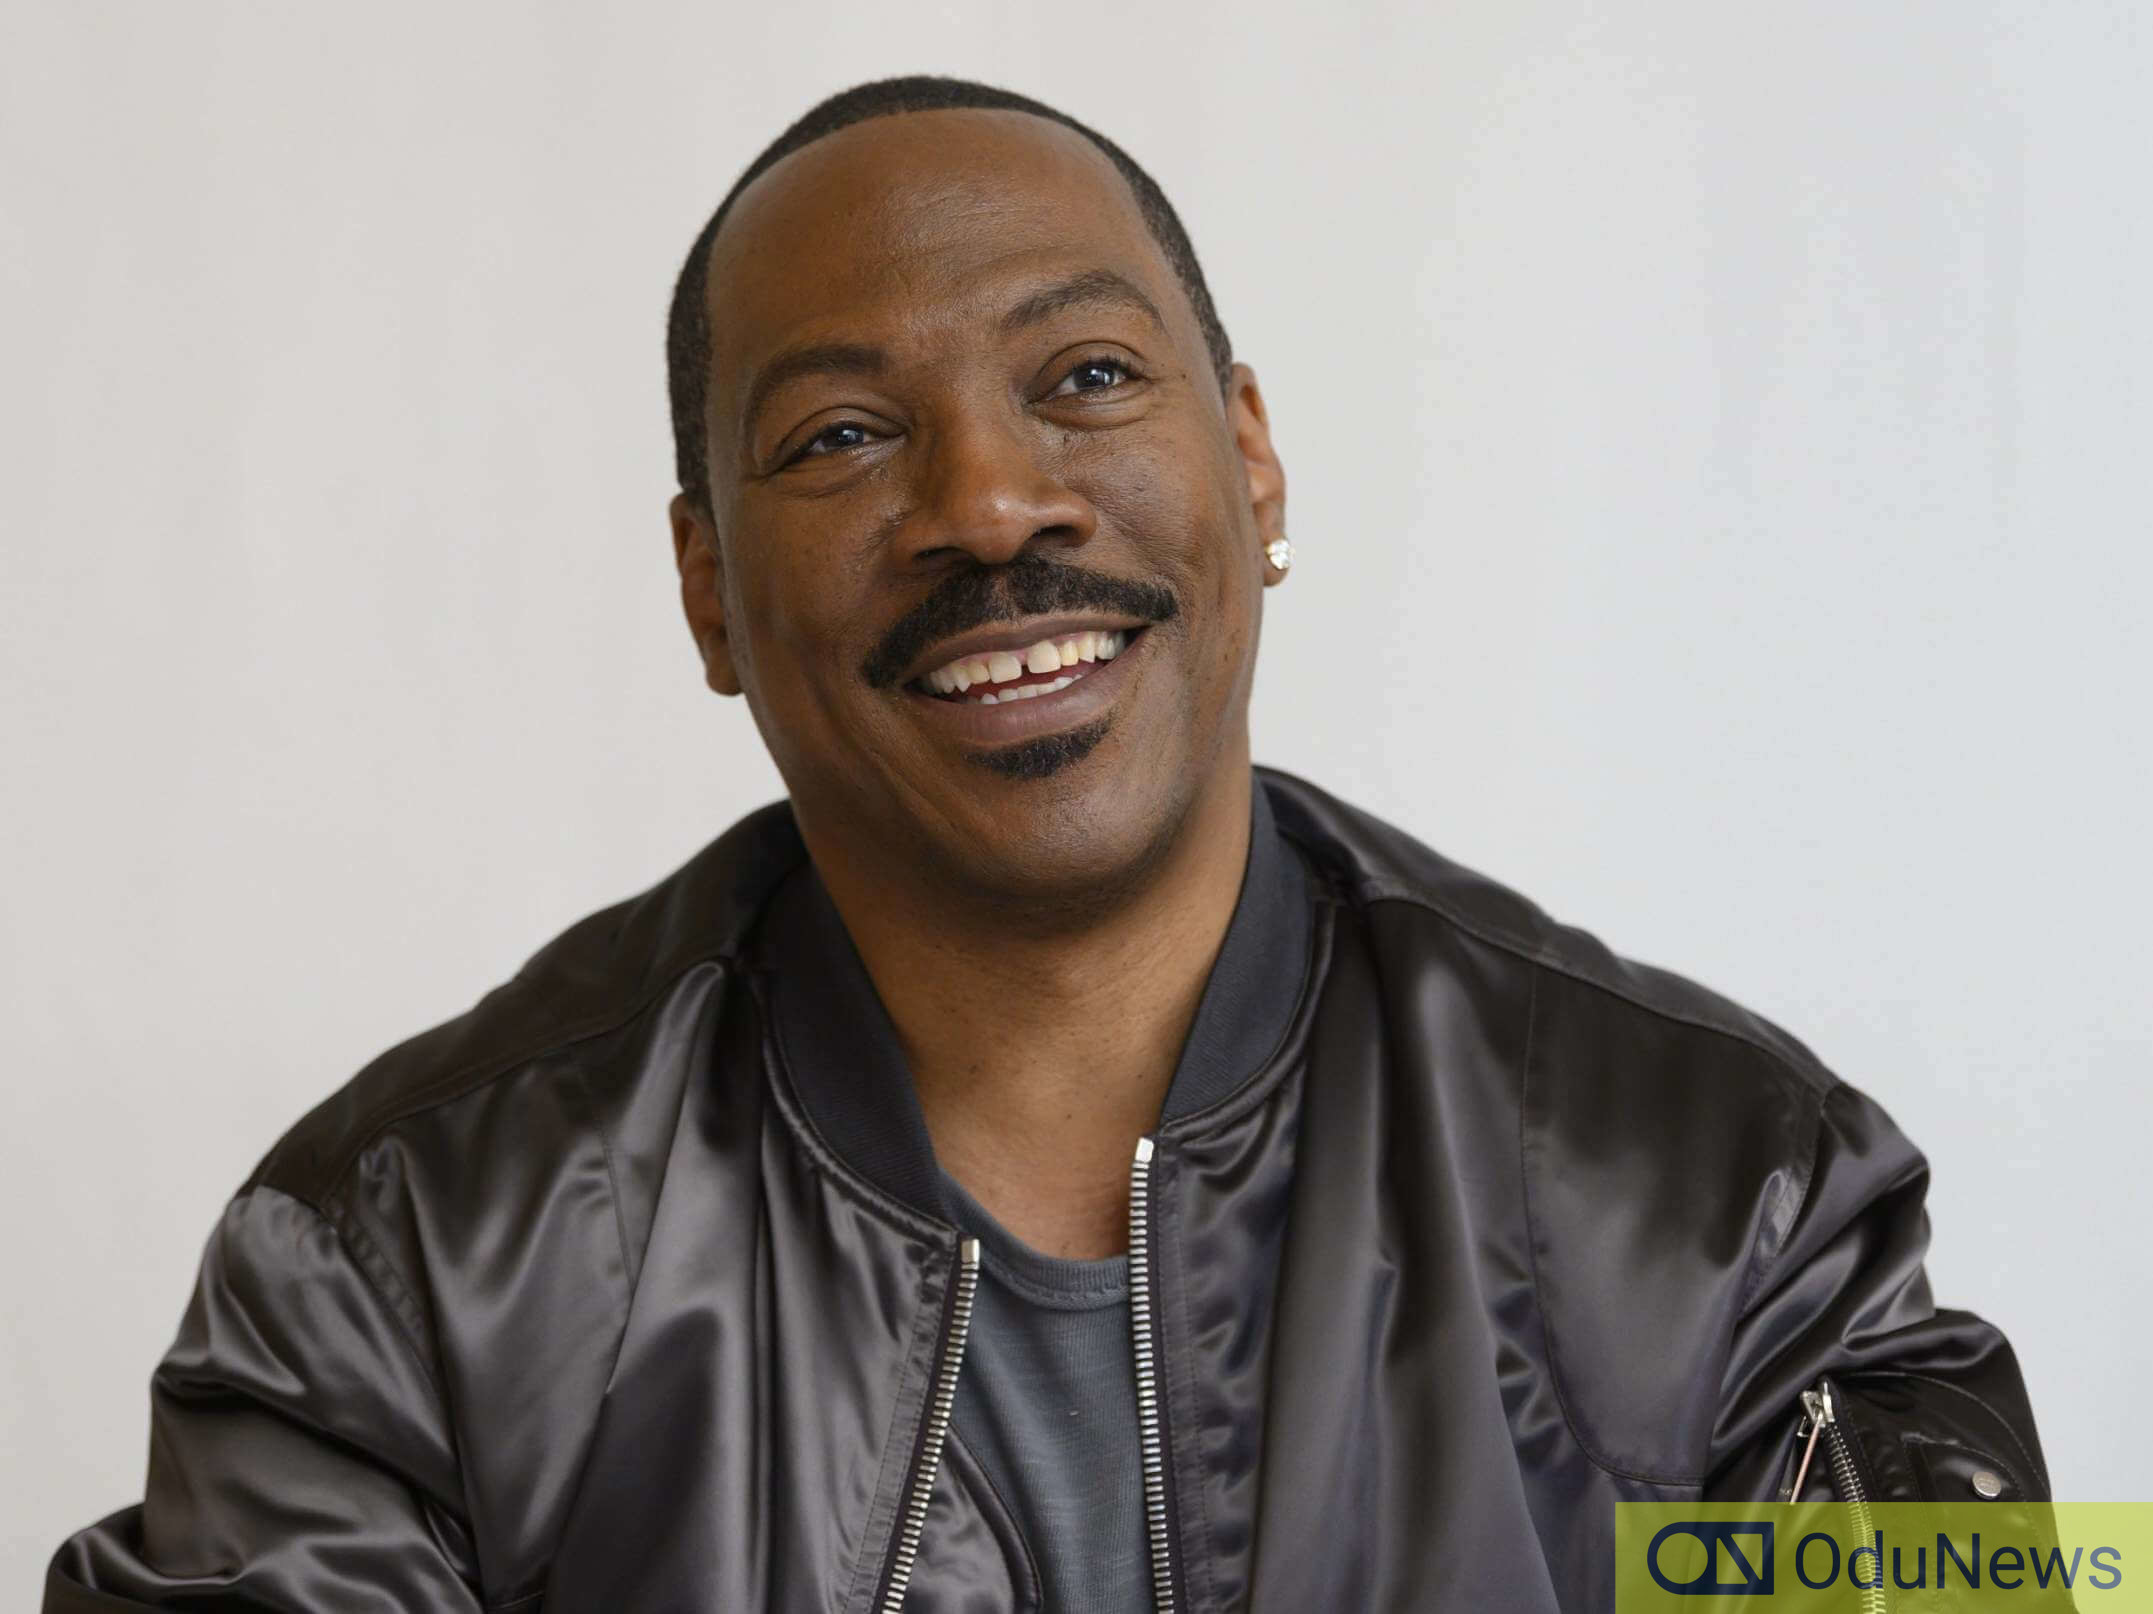 Eddie Murphy mocked Bill Cosby while giving a monologue on SNL